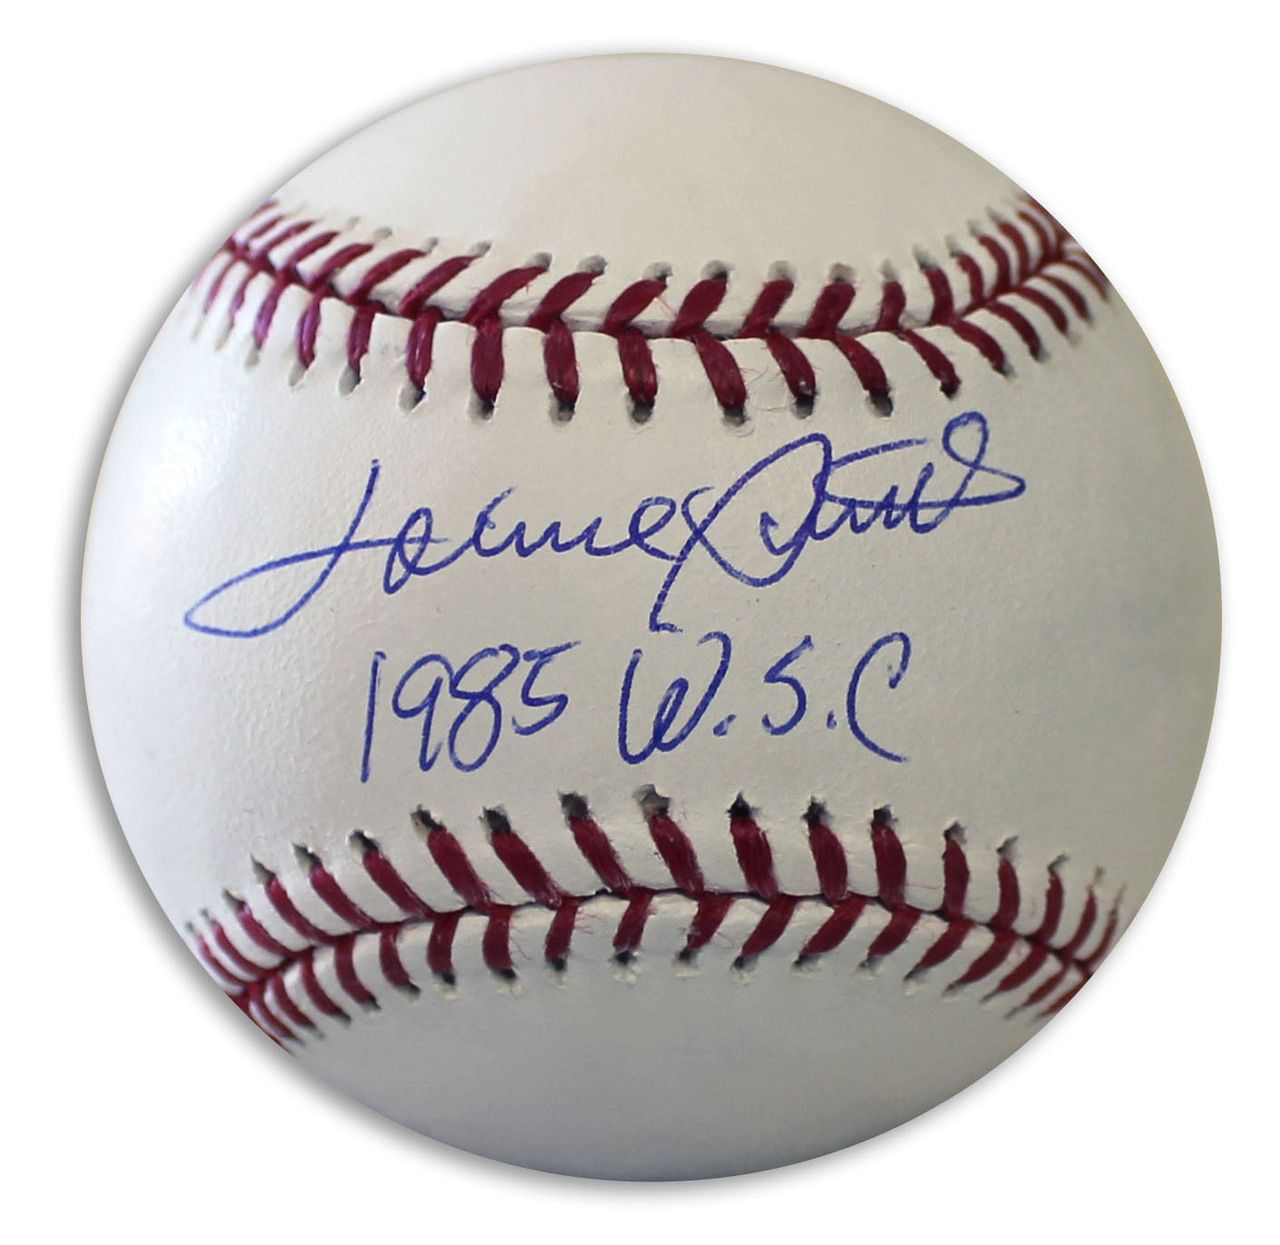 Lonnie Smith Autographed Official Mlb Baseball Inscribed 1985 Wsc Mlb Baseball Mlb Autograph